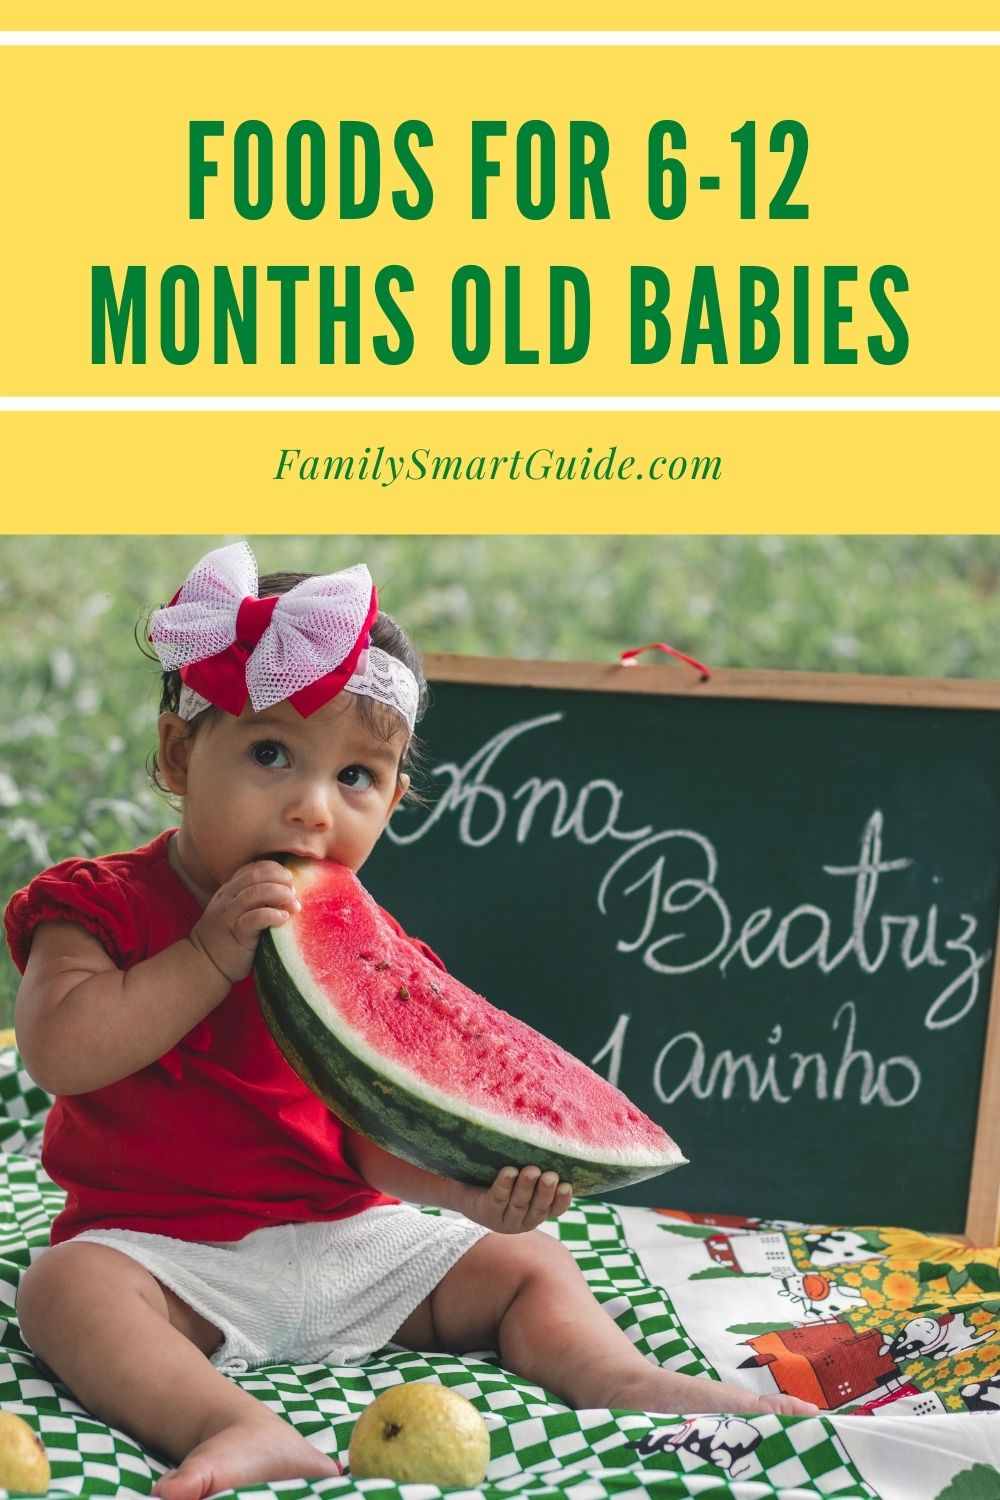 Foods For 6 to 12 Months Old Babies pinterest